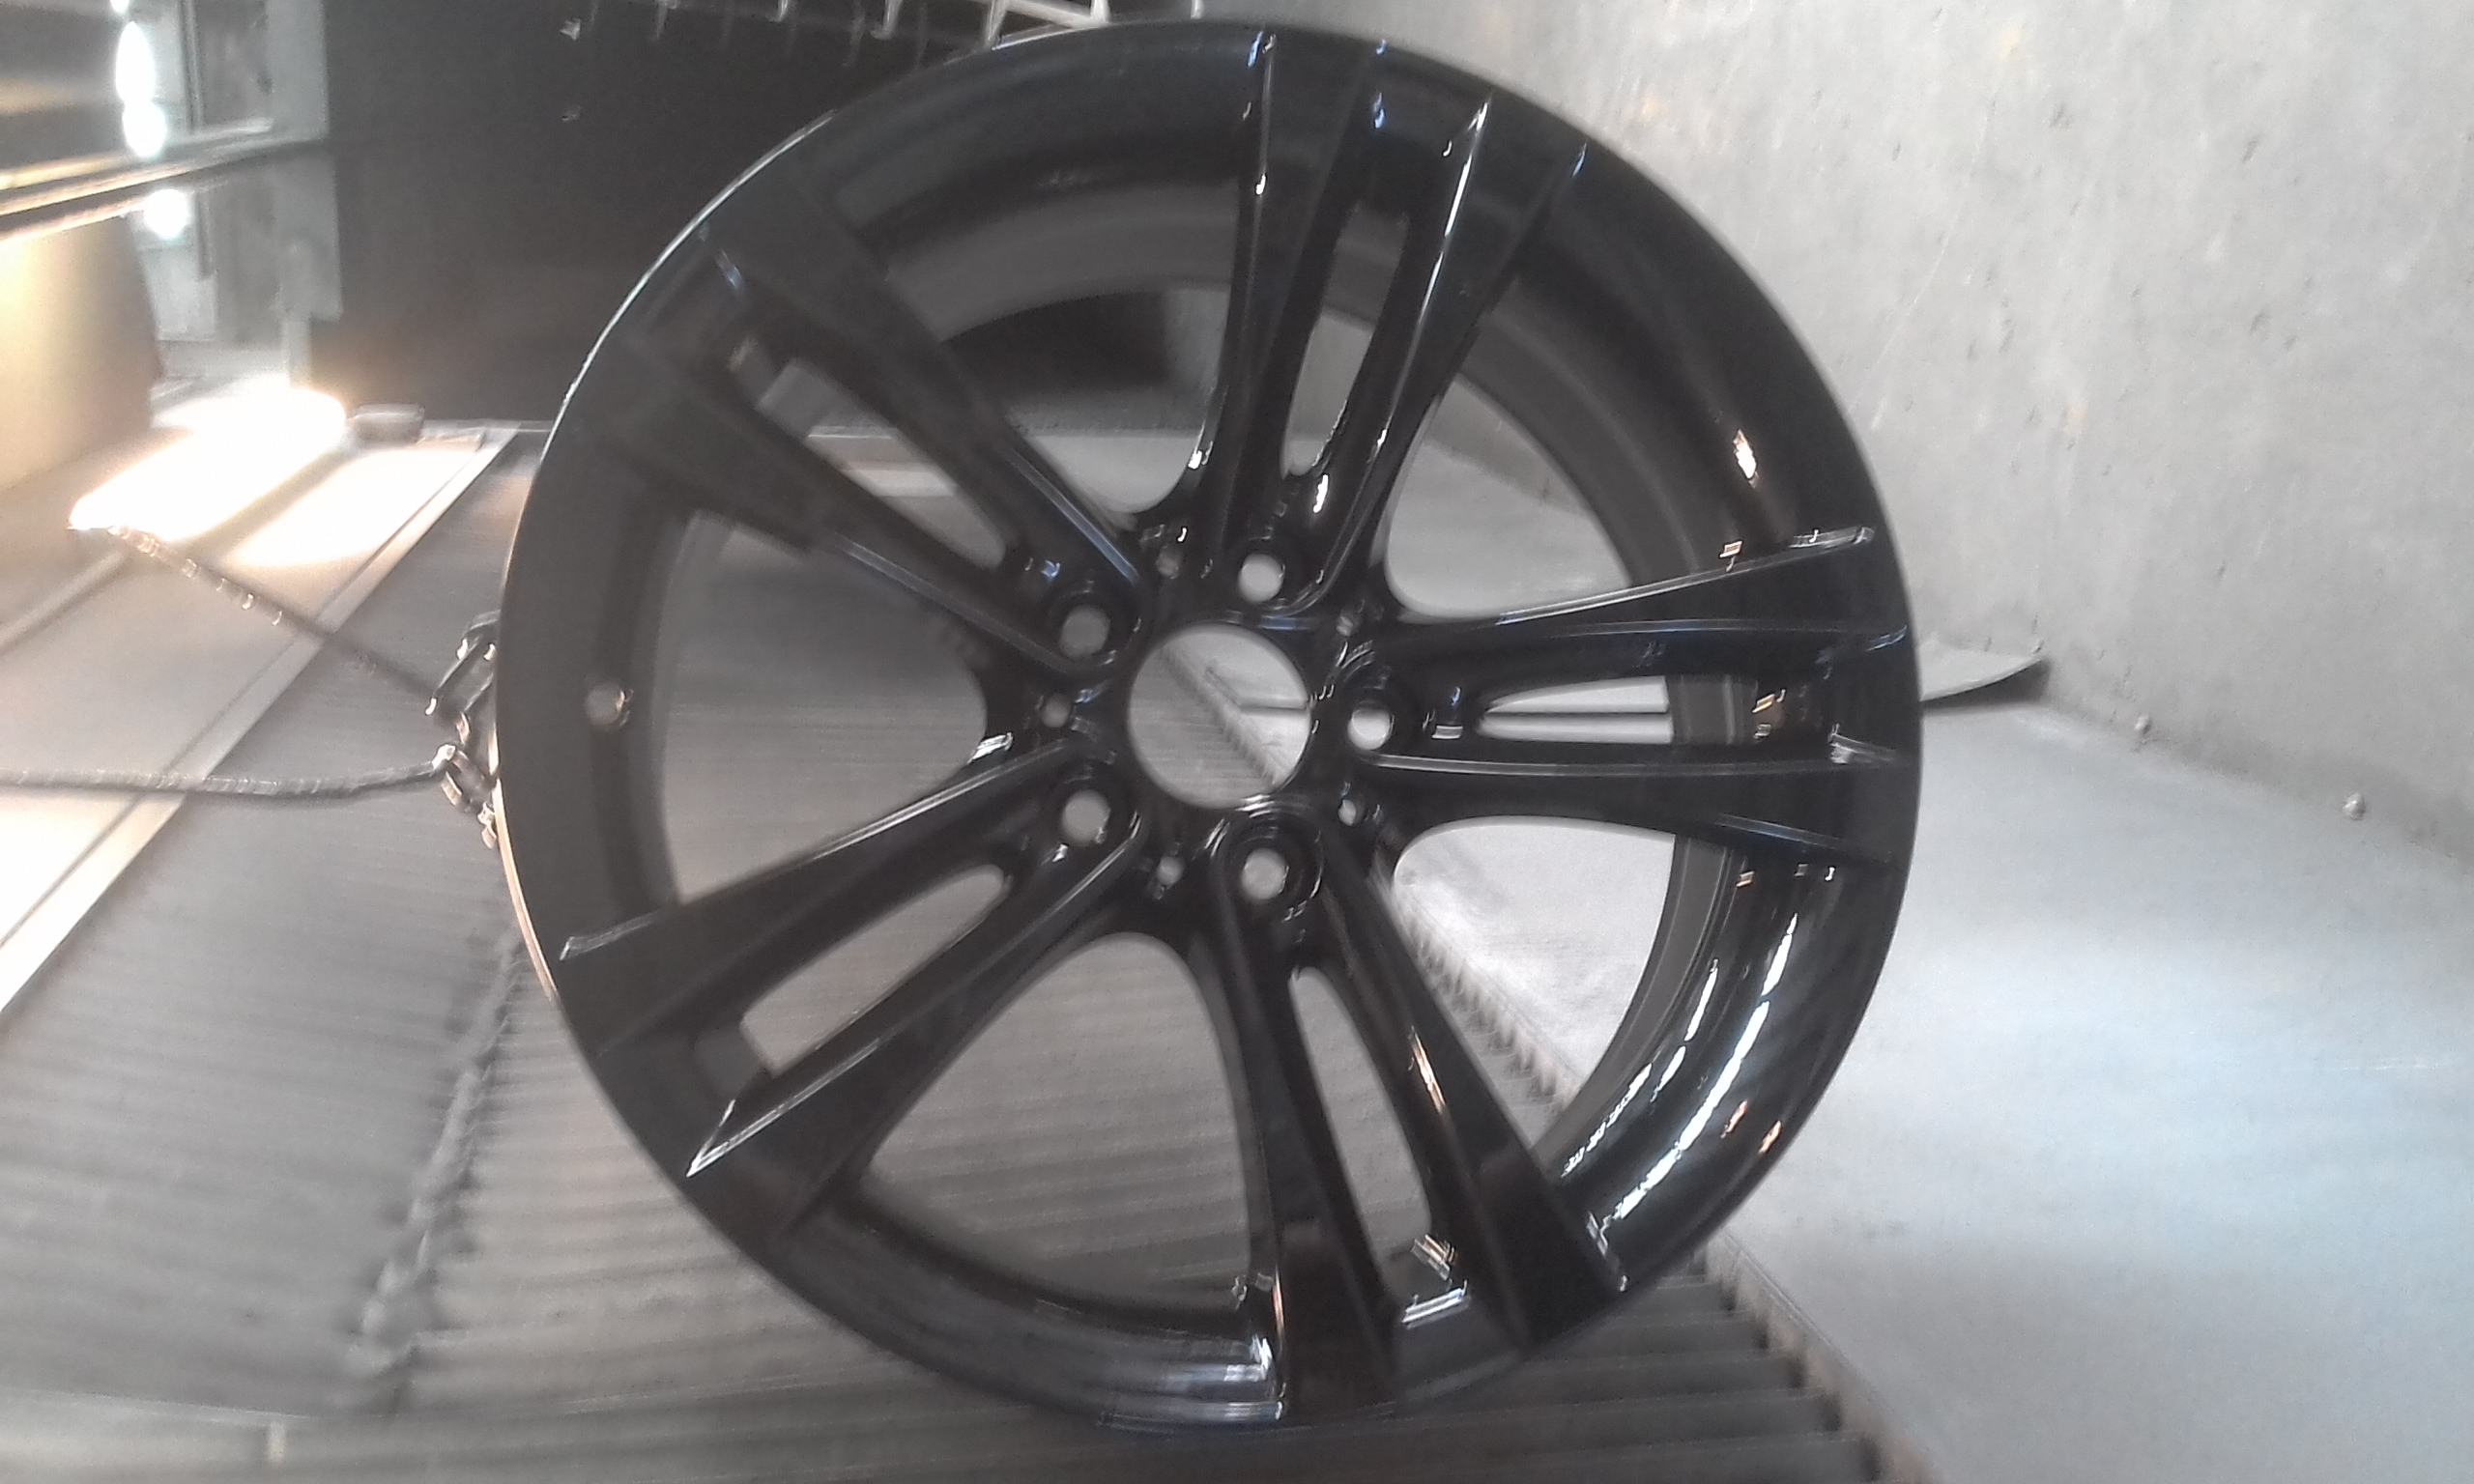 Powder coating - Oxytec satin black - BMW 18 wheels